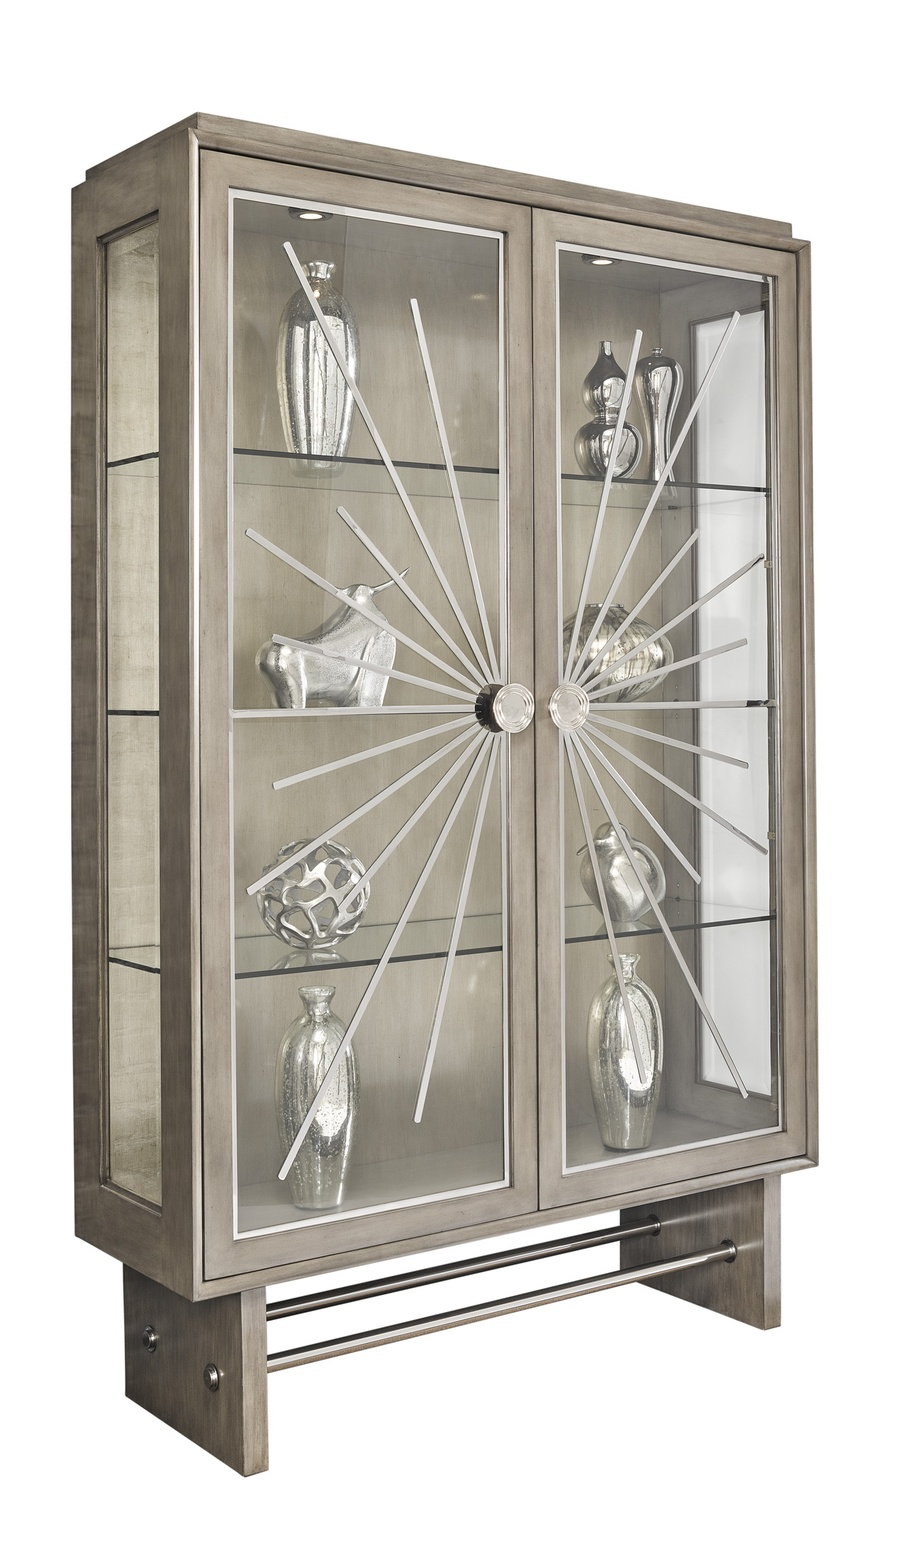 Equinox Display Cabinet shown with:Bombay finishCashmere Silver finish on inside back panelStainless Steel decorative metalworkPolished Nickel hardware